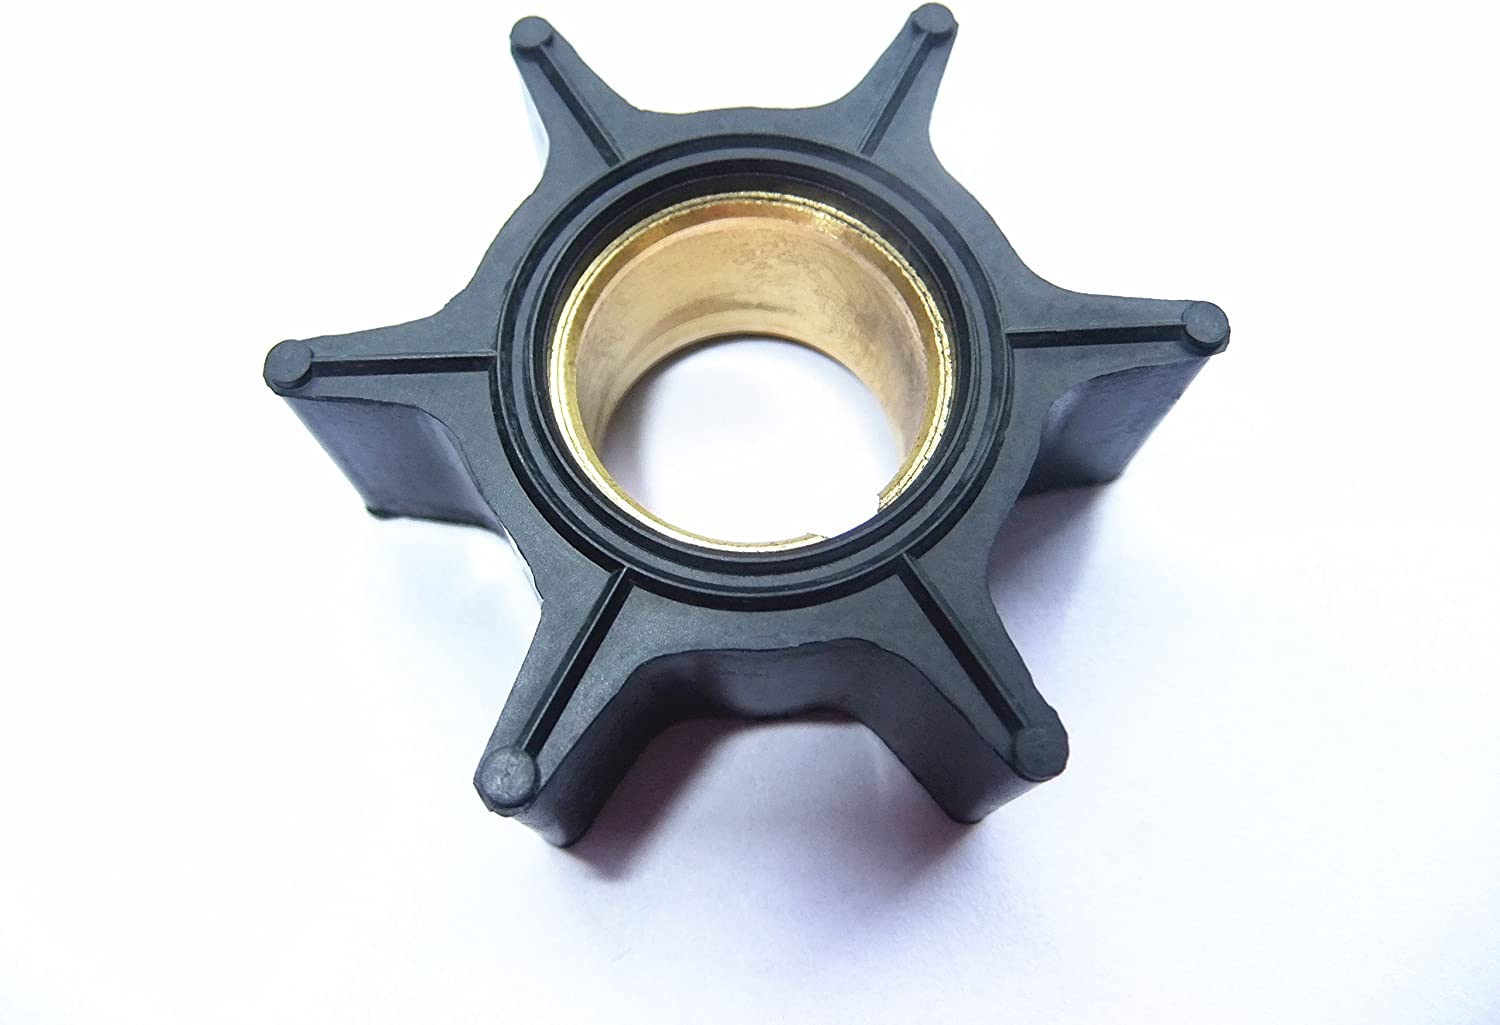 47-89983T 47-89983 47-20268 47-65959 18-3007 Boat Motor Water Pump Impeller for Mercury 30HP 35HP 40HP 45HP 50HP 60HP 65HP 70HP Outboard Engine